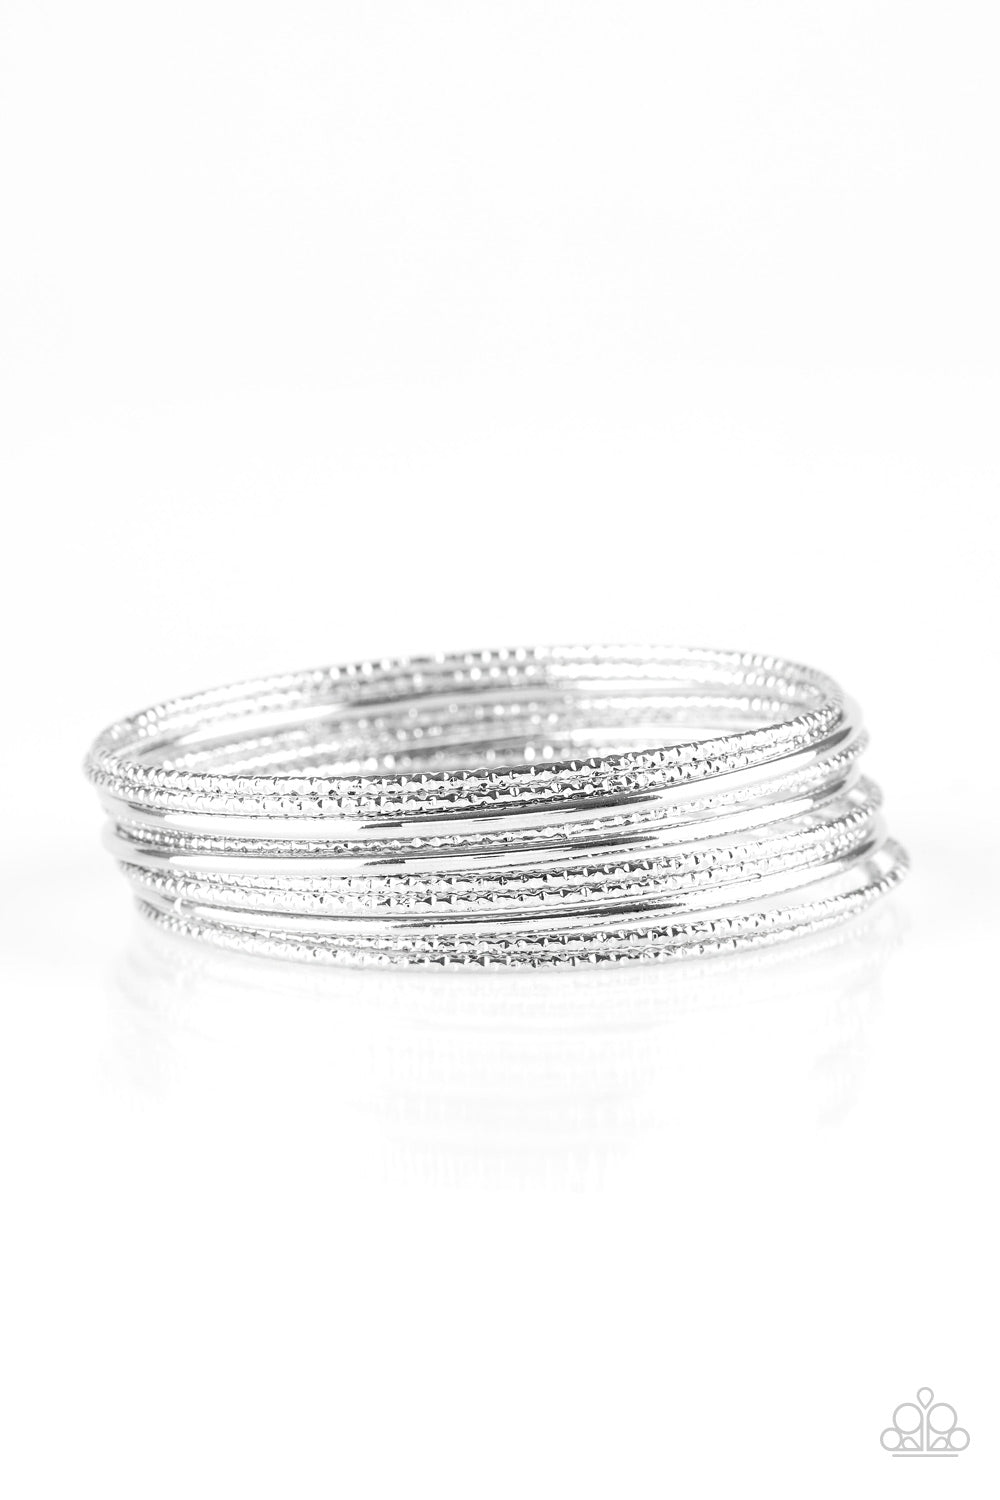 Paparazzi Bracelet ~ Bangle Babe - Silver